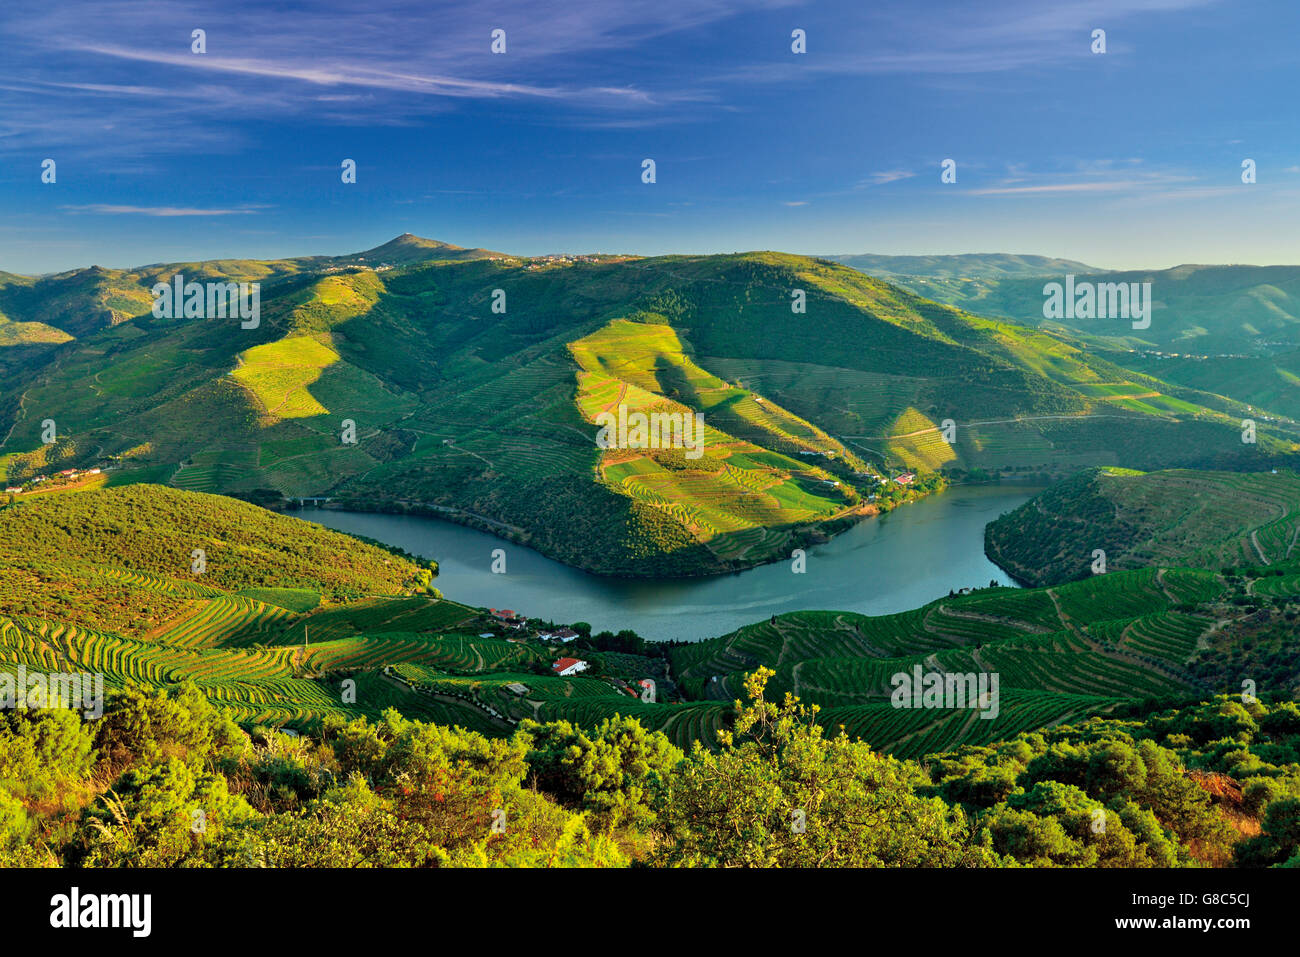 Portugal: Spectacular view of river Douro in the afternoon light - Stock Image